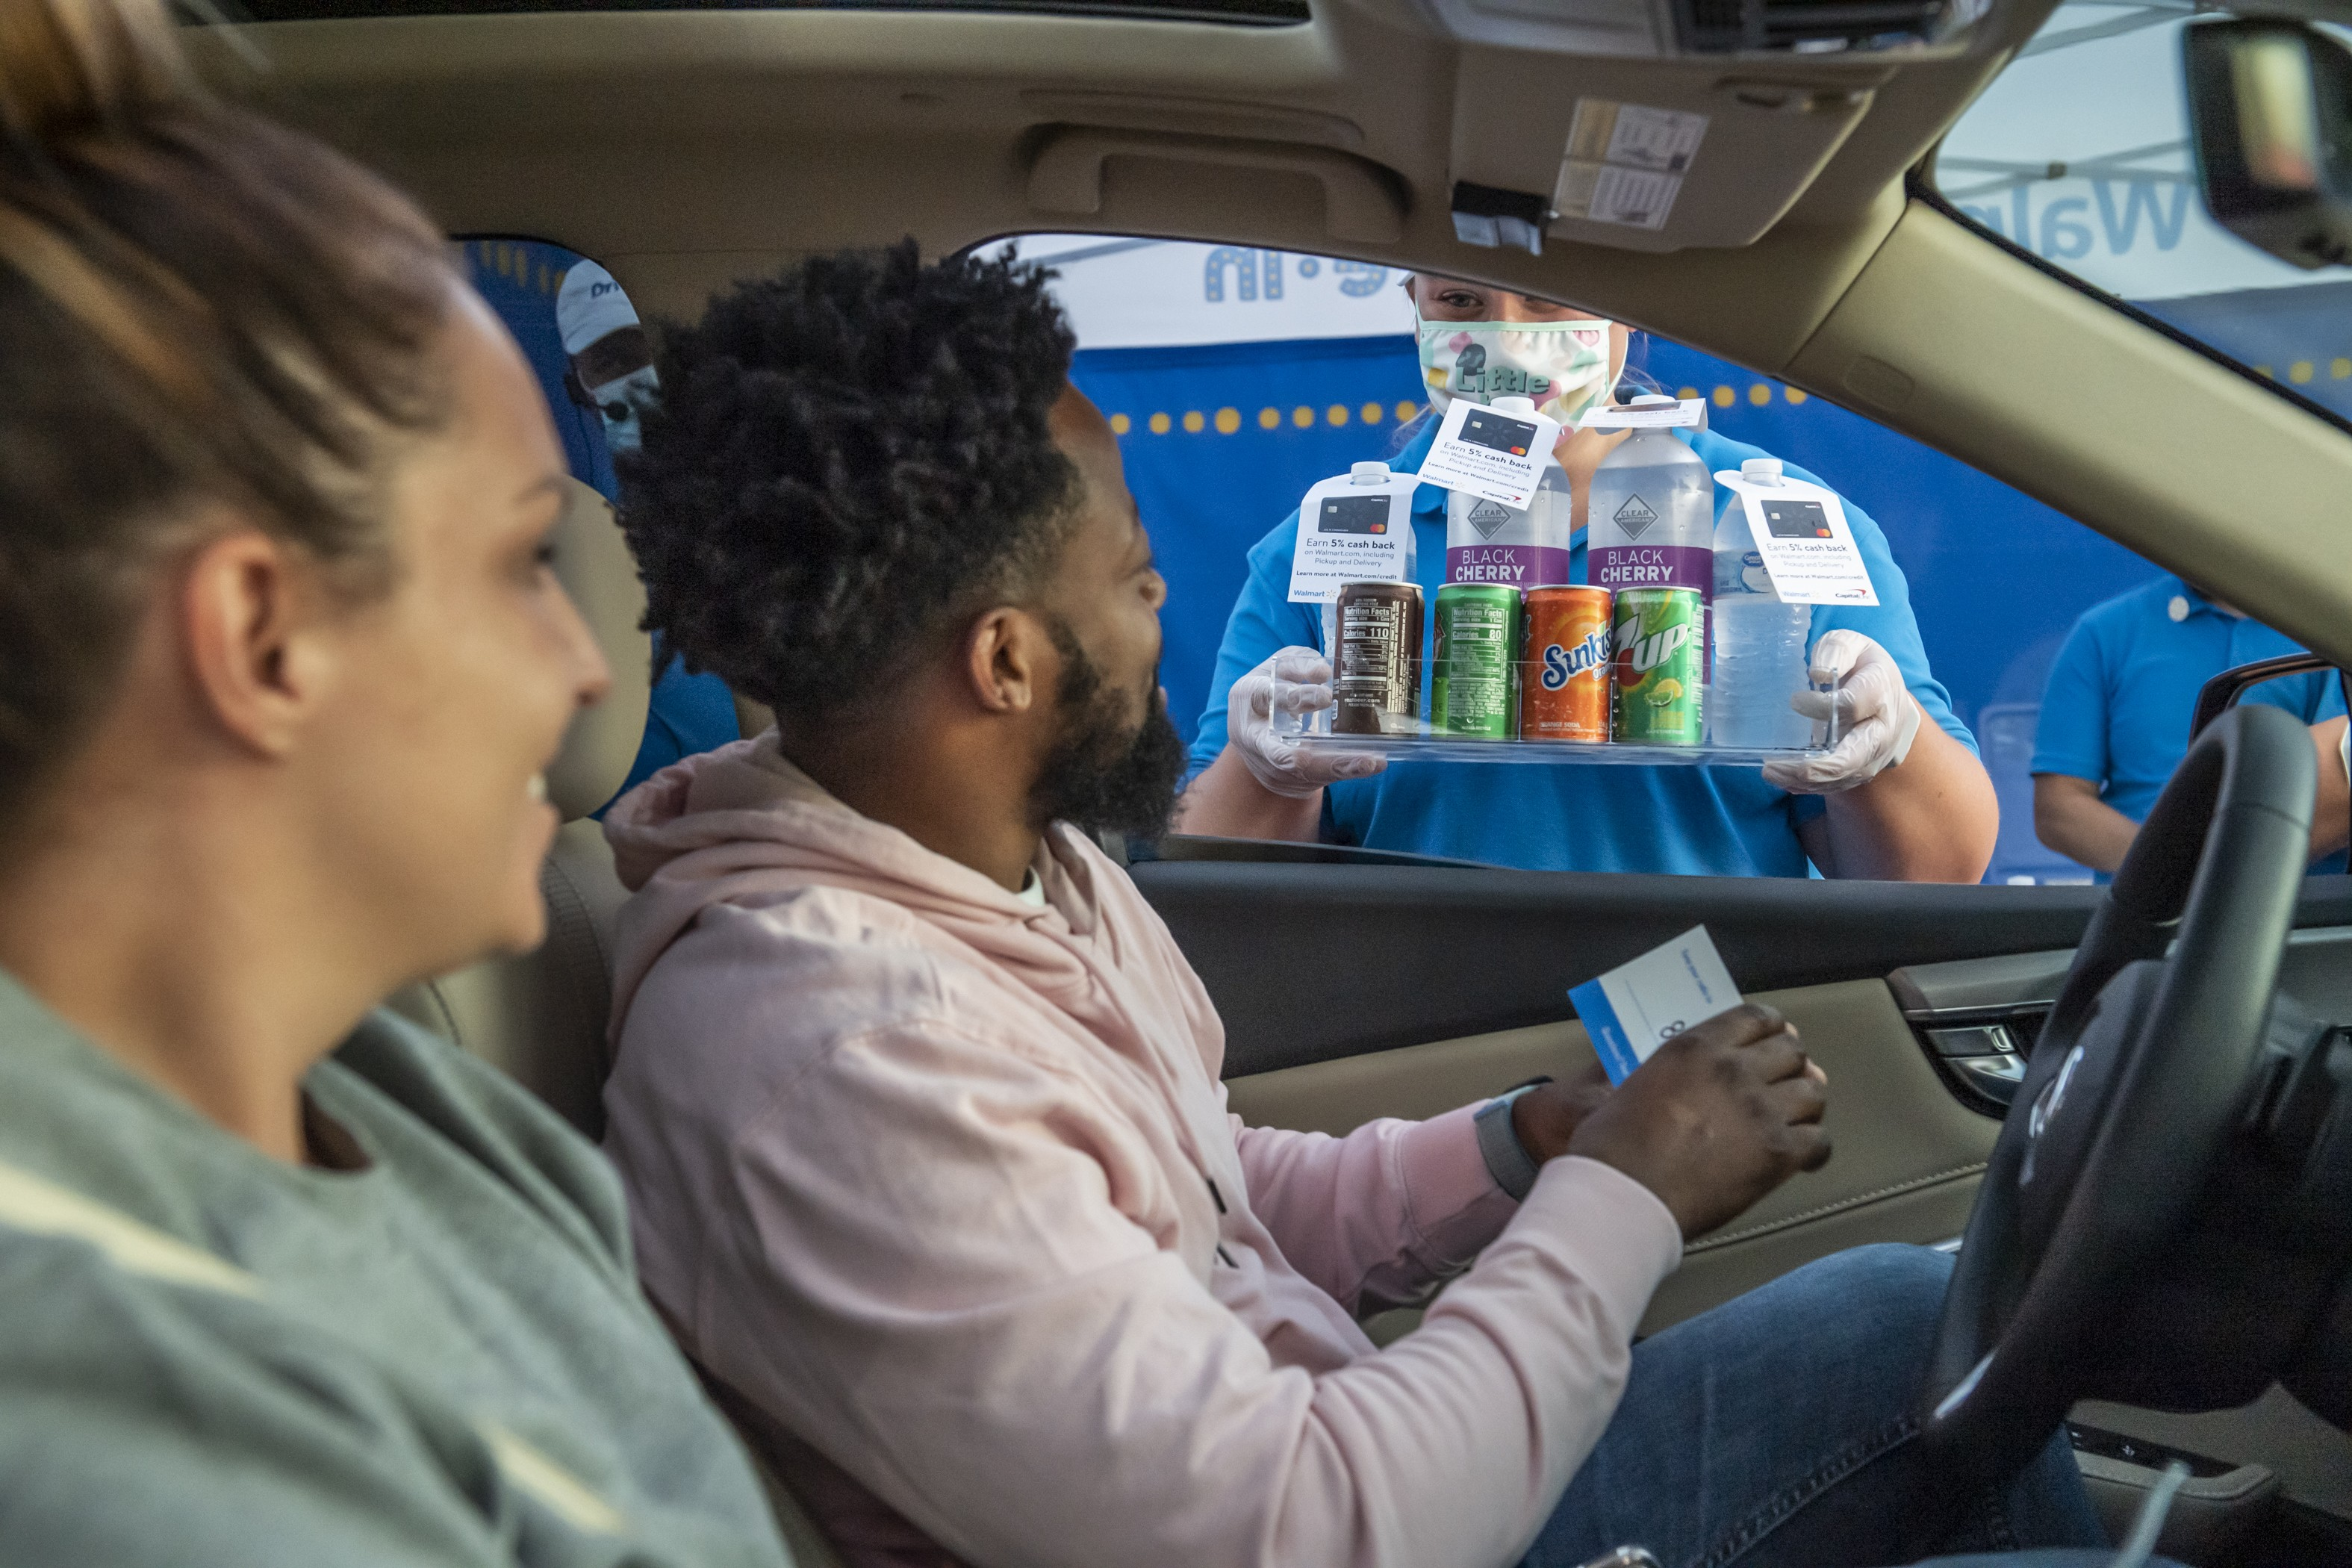 Walmart Drive-In associate passing out drinks to customers